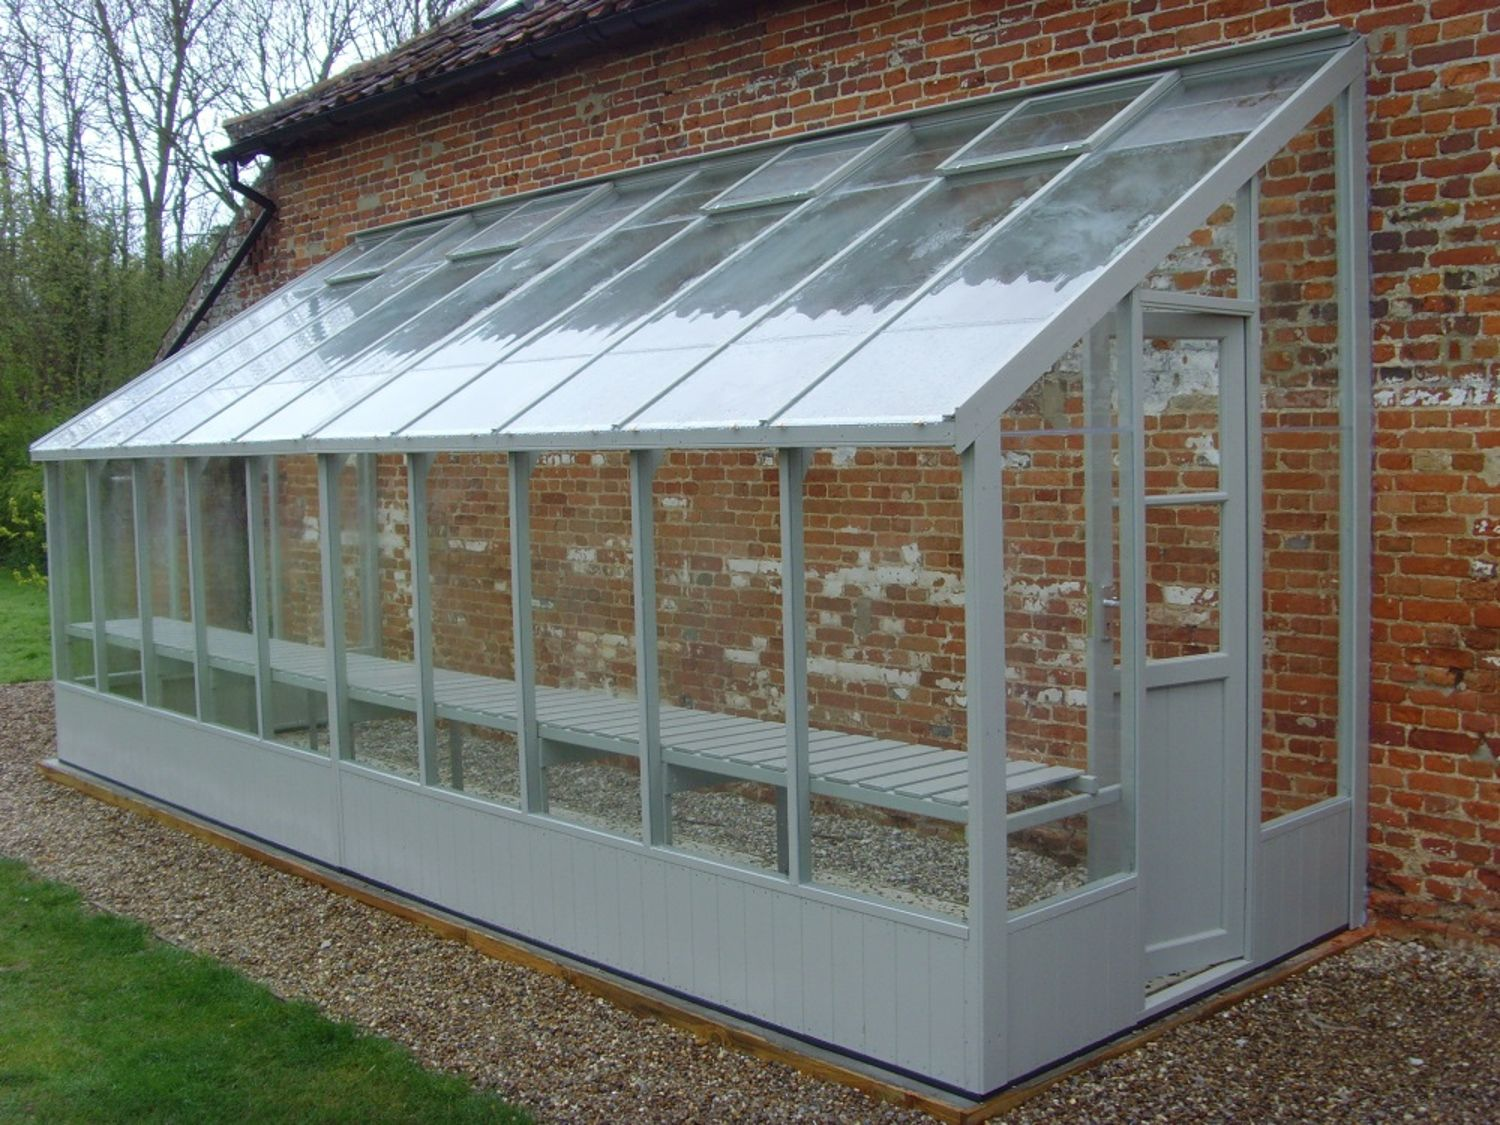 Swallow dove 6x20 lean to greenhouse greenhouse stores for Building plans for my house